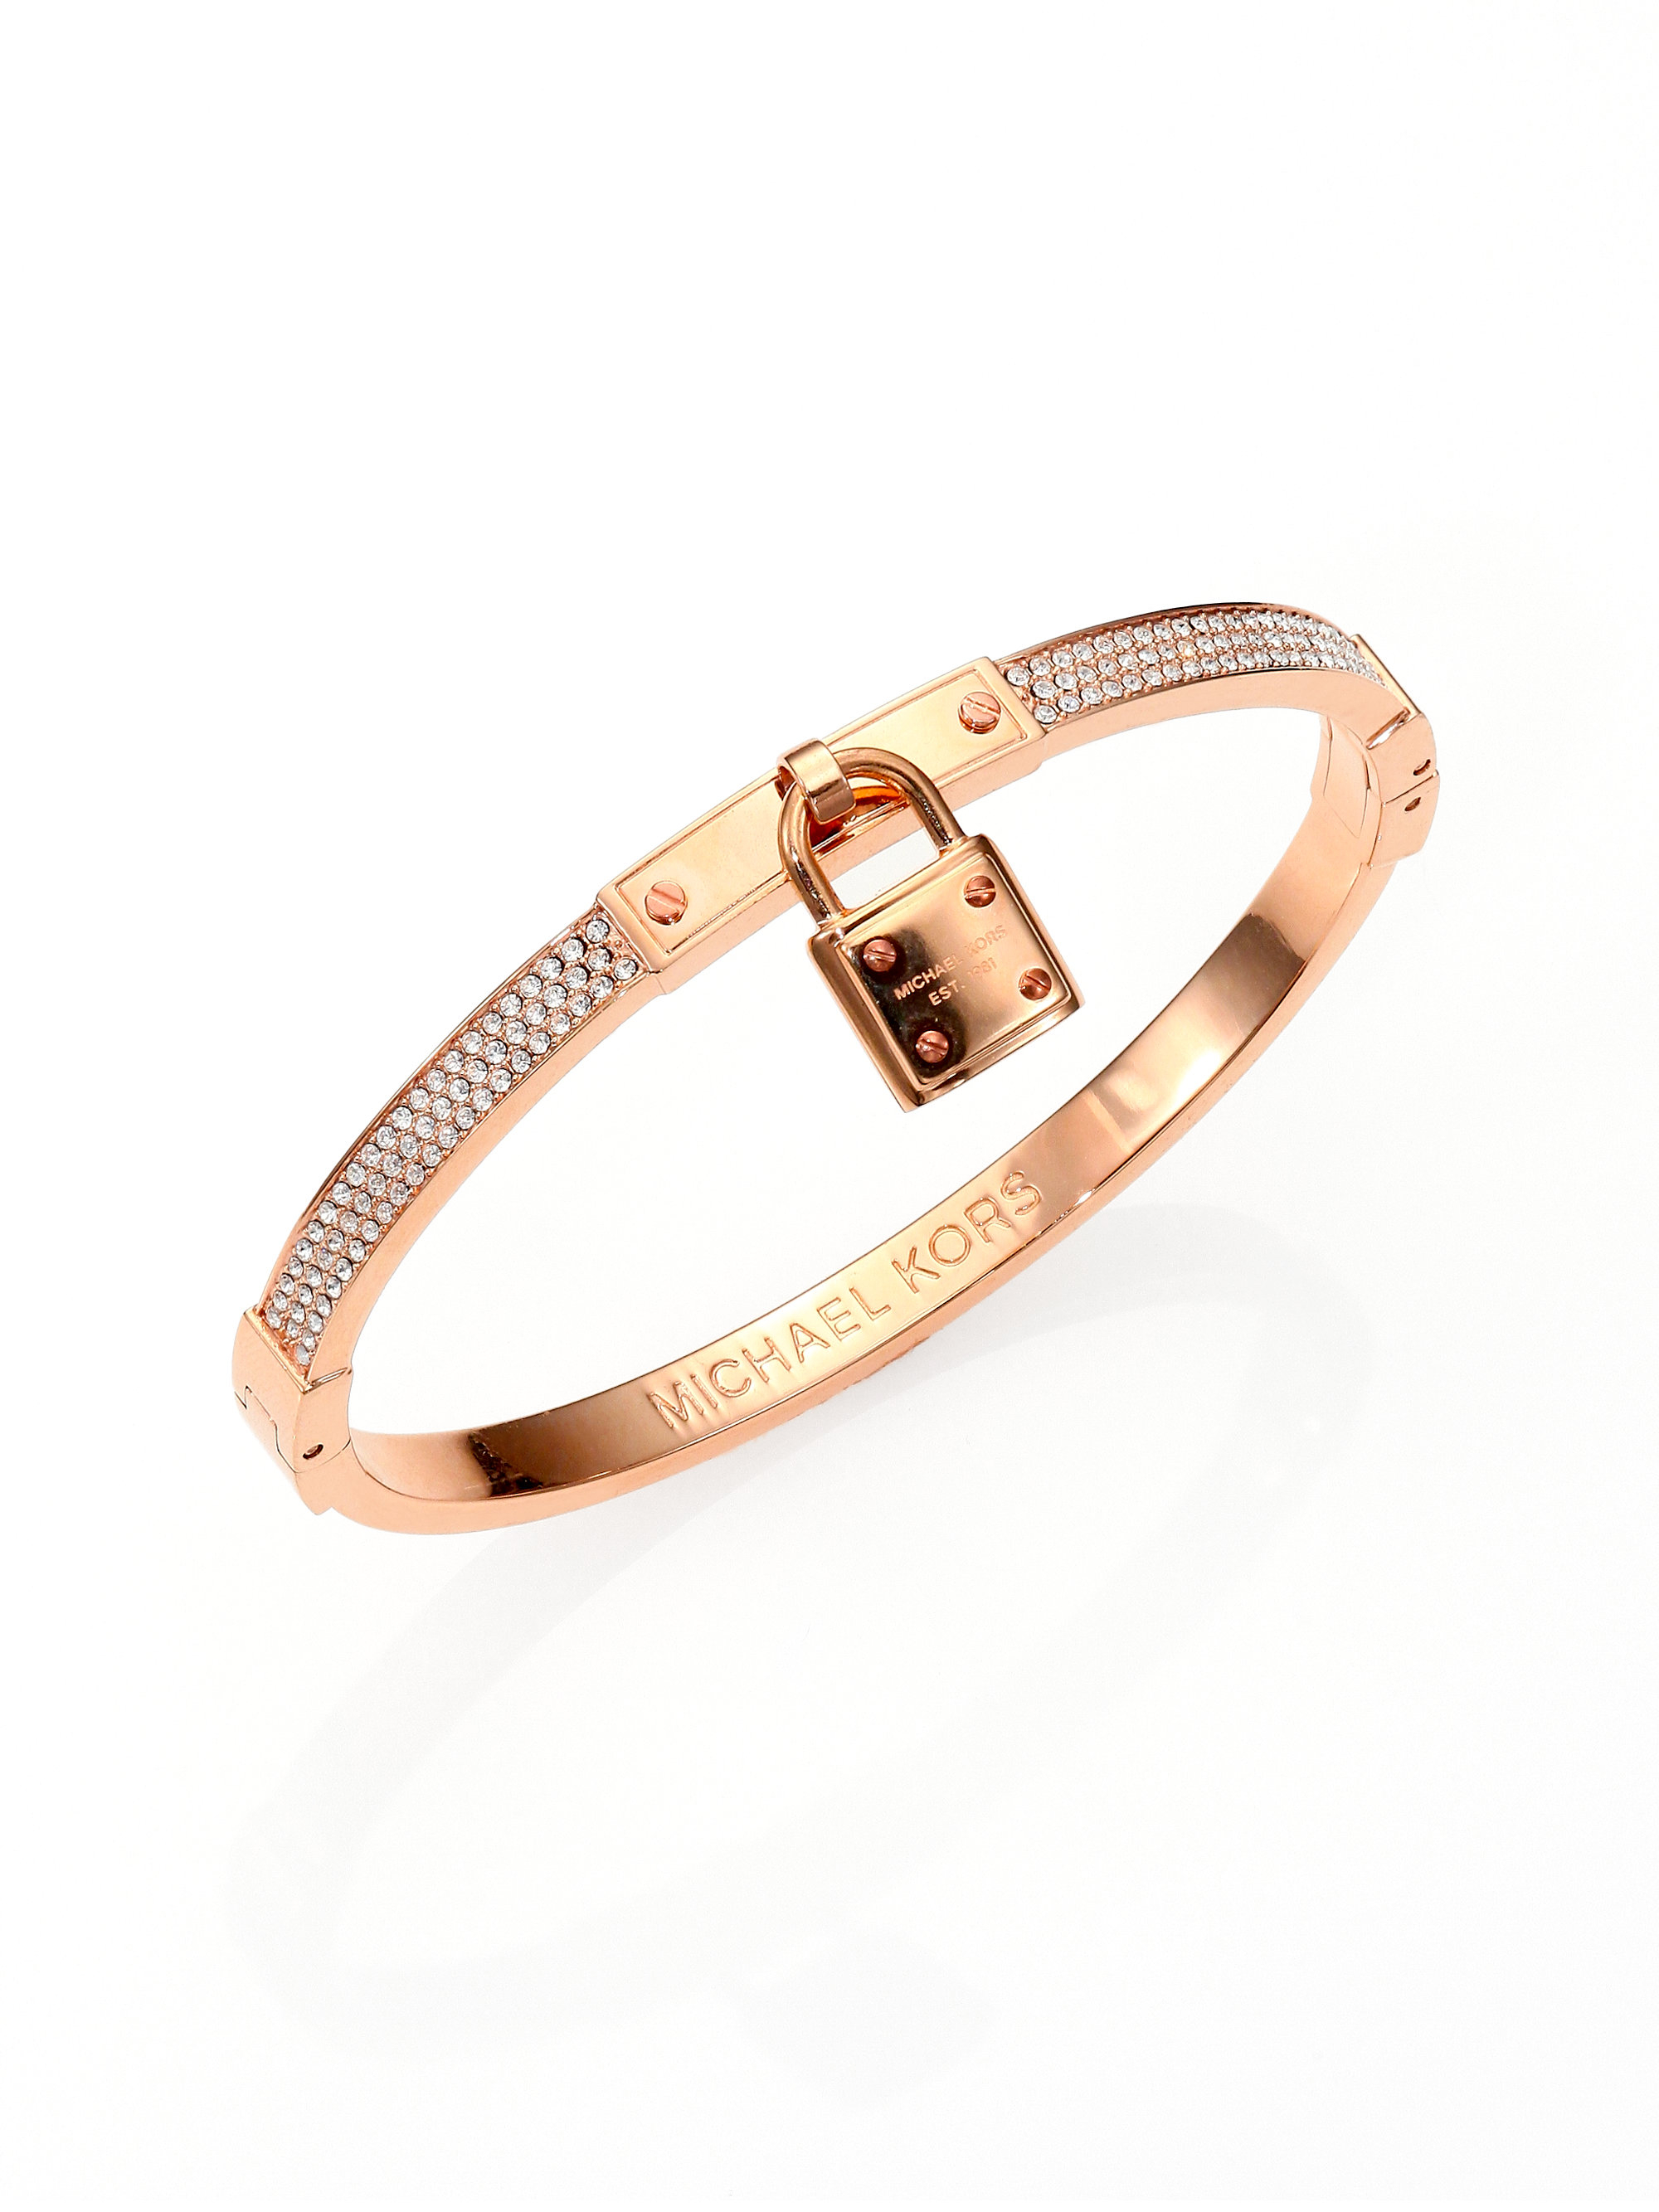 rose bangles lyst anne bangle bracelet half jewelry women diamond gold s sisteron glisten